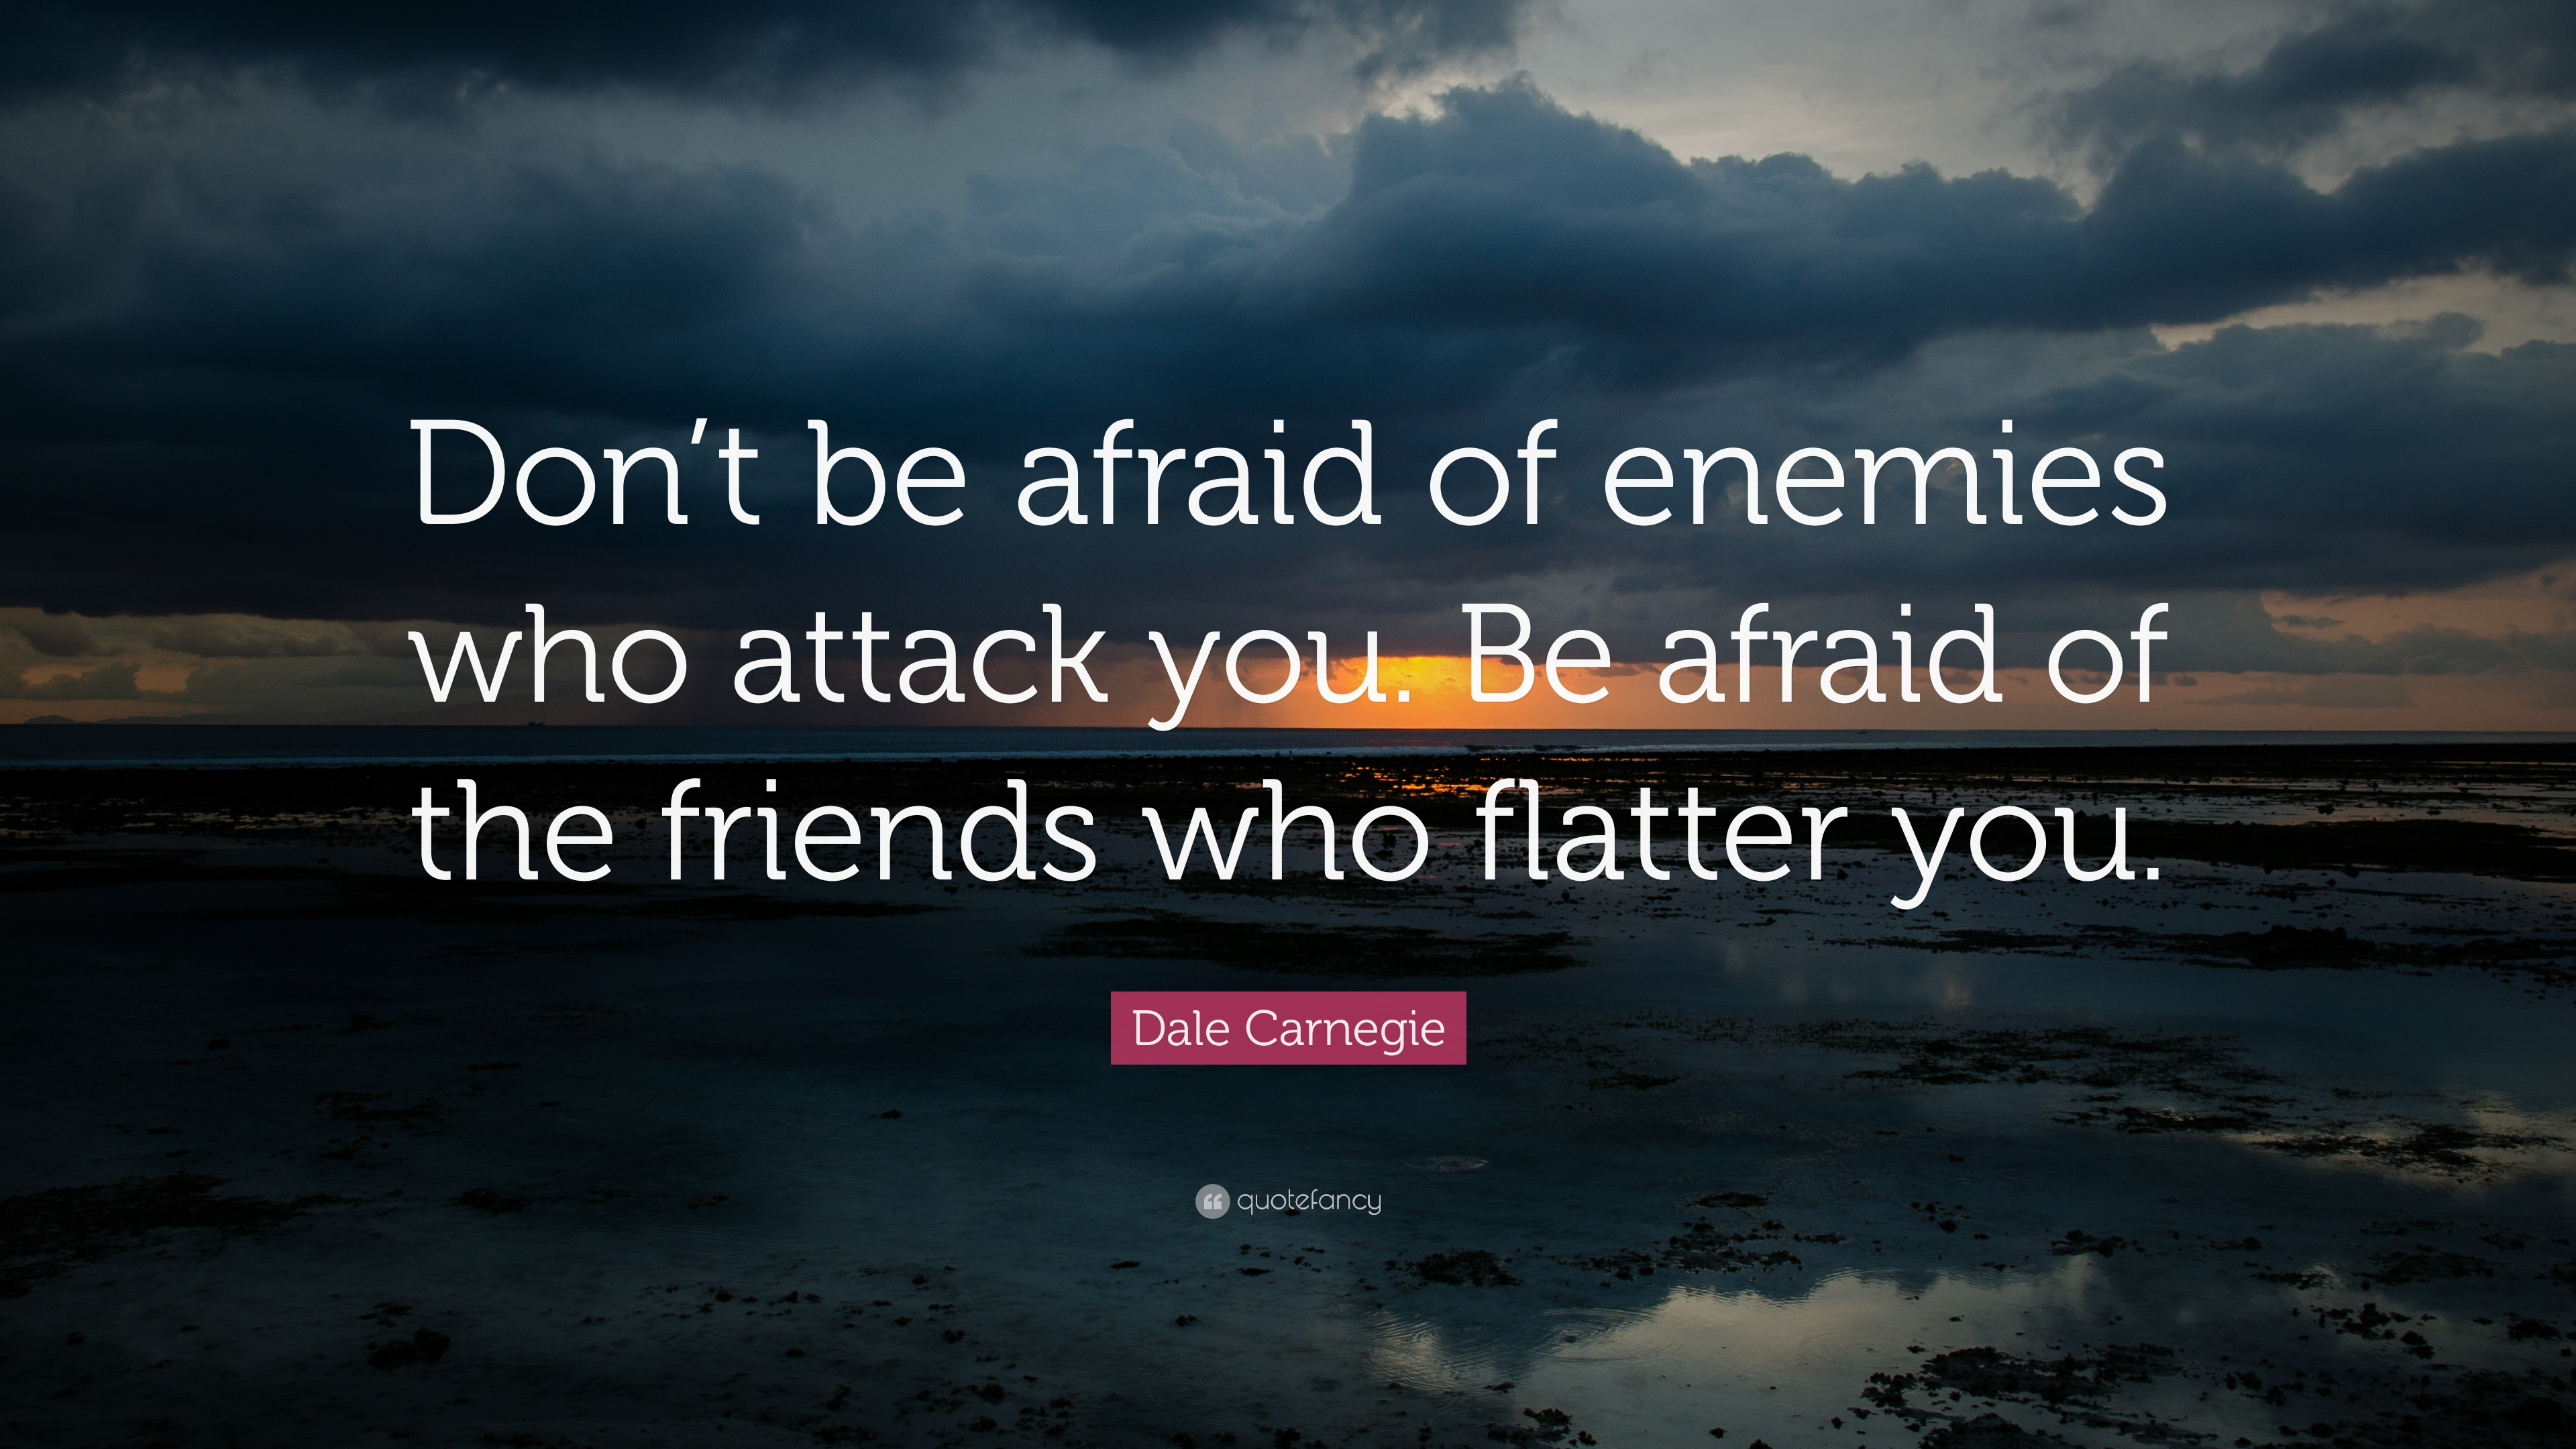 Dale Carnegie Quote About Friends